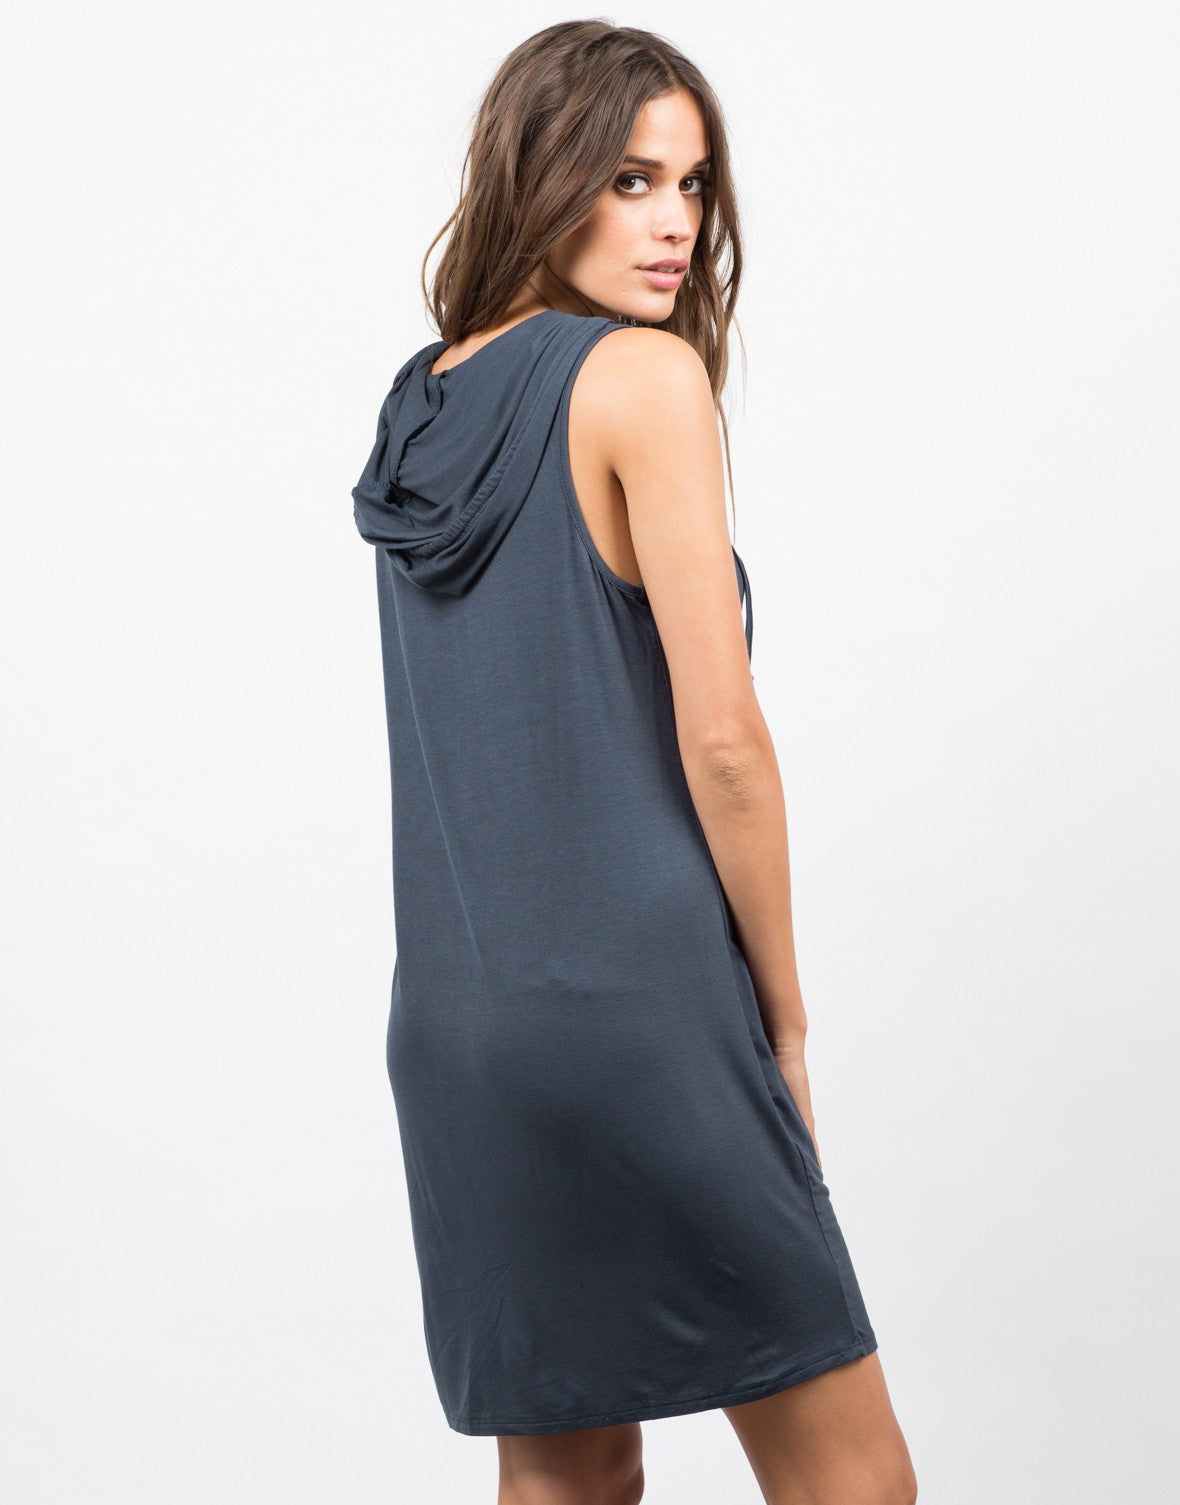 Back View of Hooded Sleeveless Tank Dress